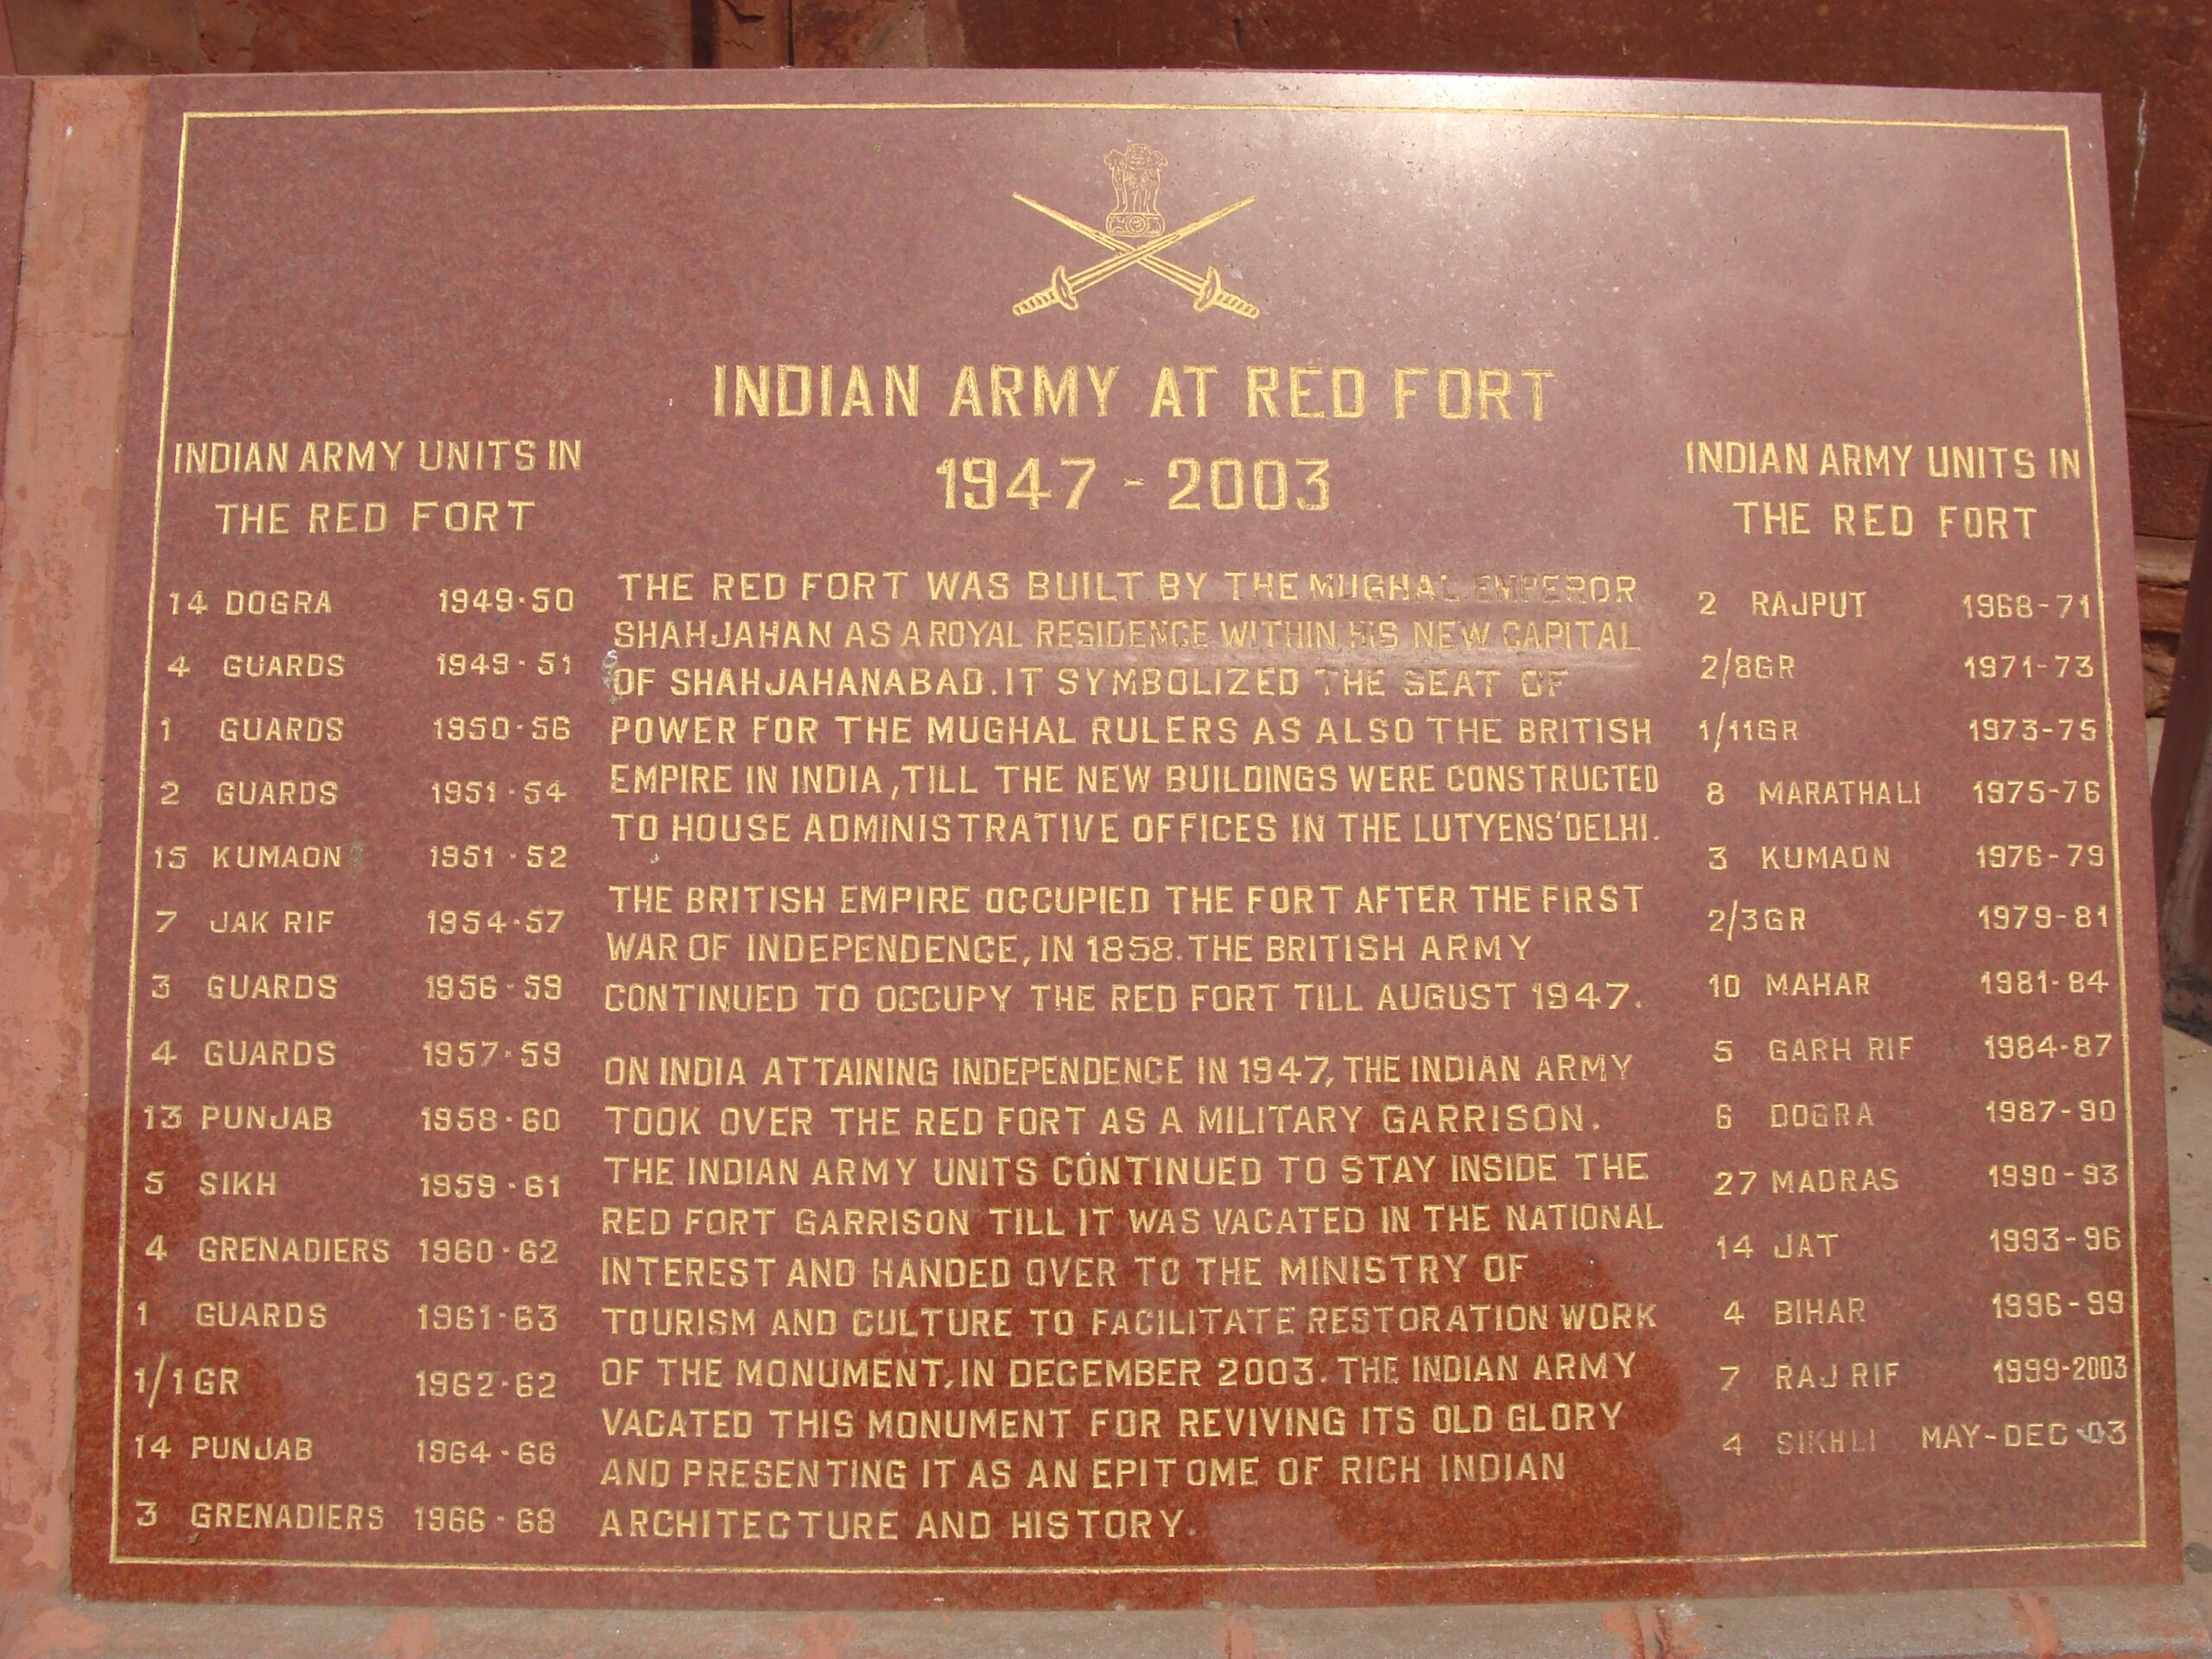 Indian Army at Red Fort (Old Delhi, India) 1947 - 2003